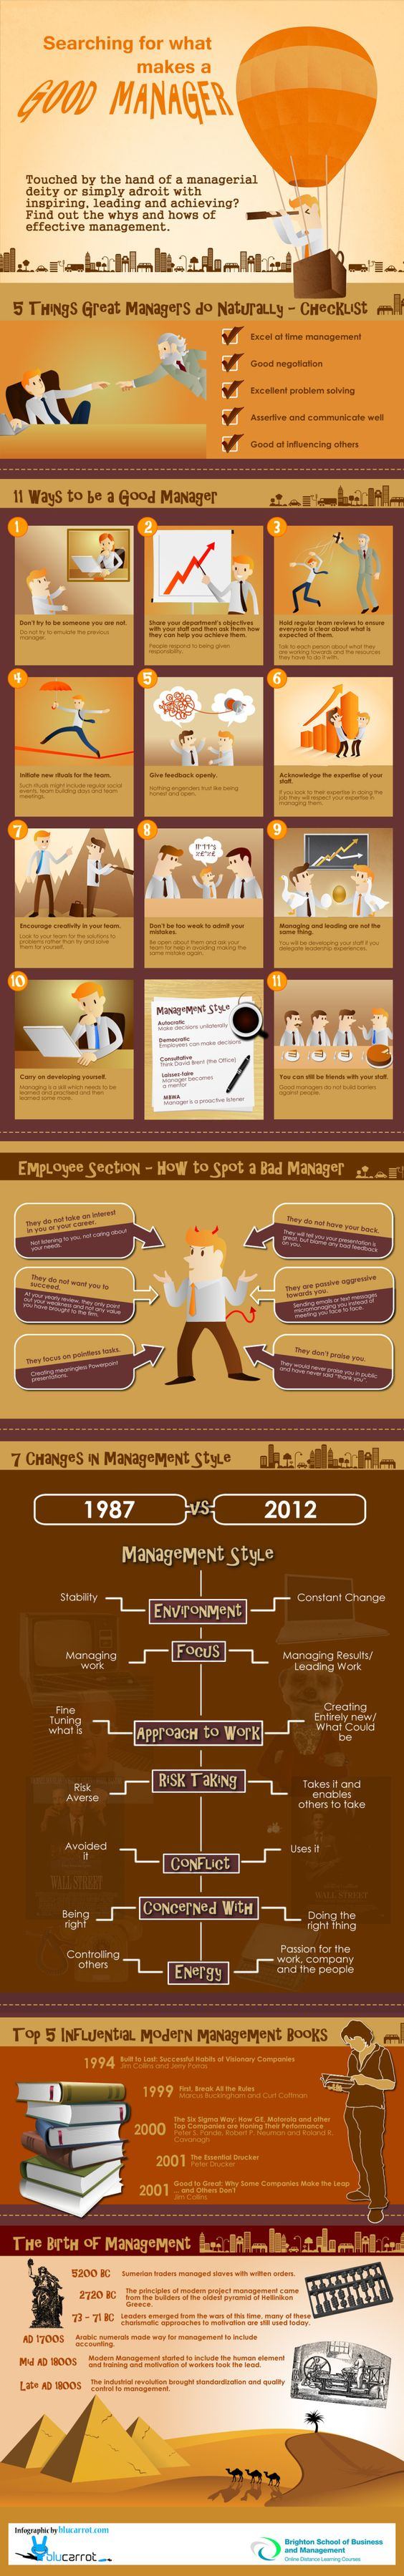 How to Be a Great Manager [INFOGRAPHIC]